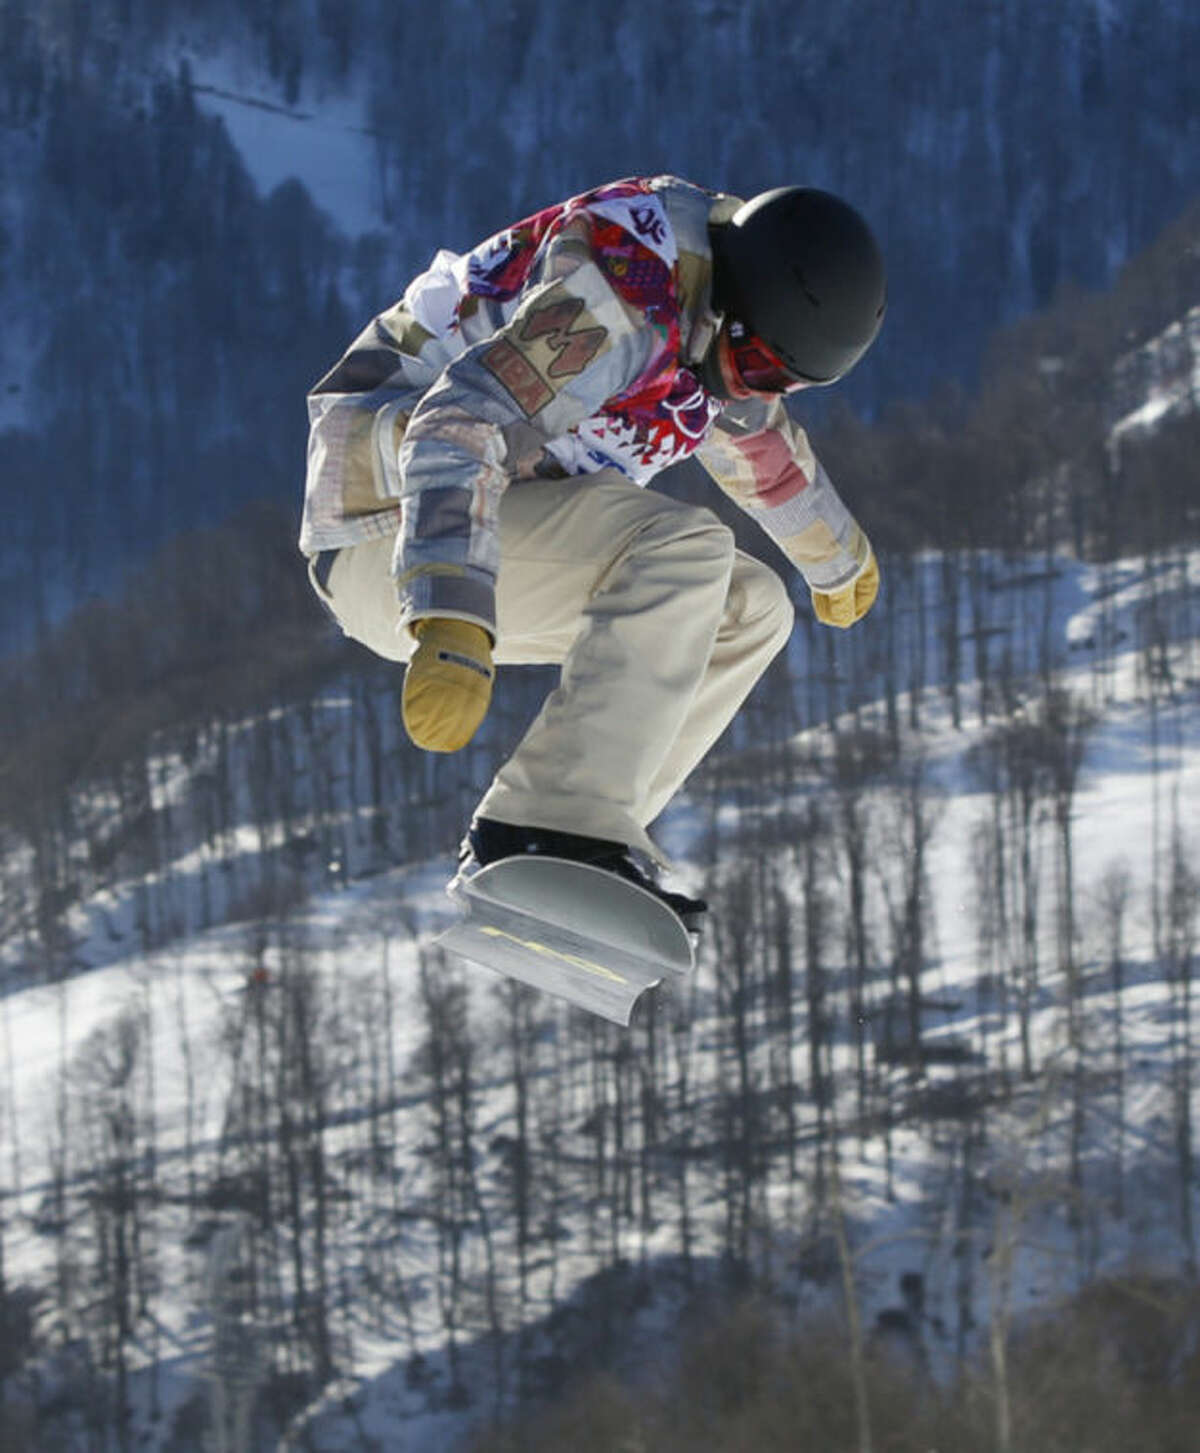 United States' Charles Guldemond takes a jump during men's snowboard slopestyle qualifying at the Rosa Khutor Extreme Park ahead of the 2014 Winter Olympics, Thursday, Feb. 6, 2014, in Krasnaya Polyana, Russia. (AP Photo/Sergei Grits)